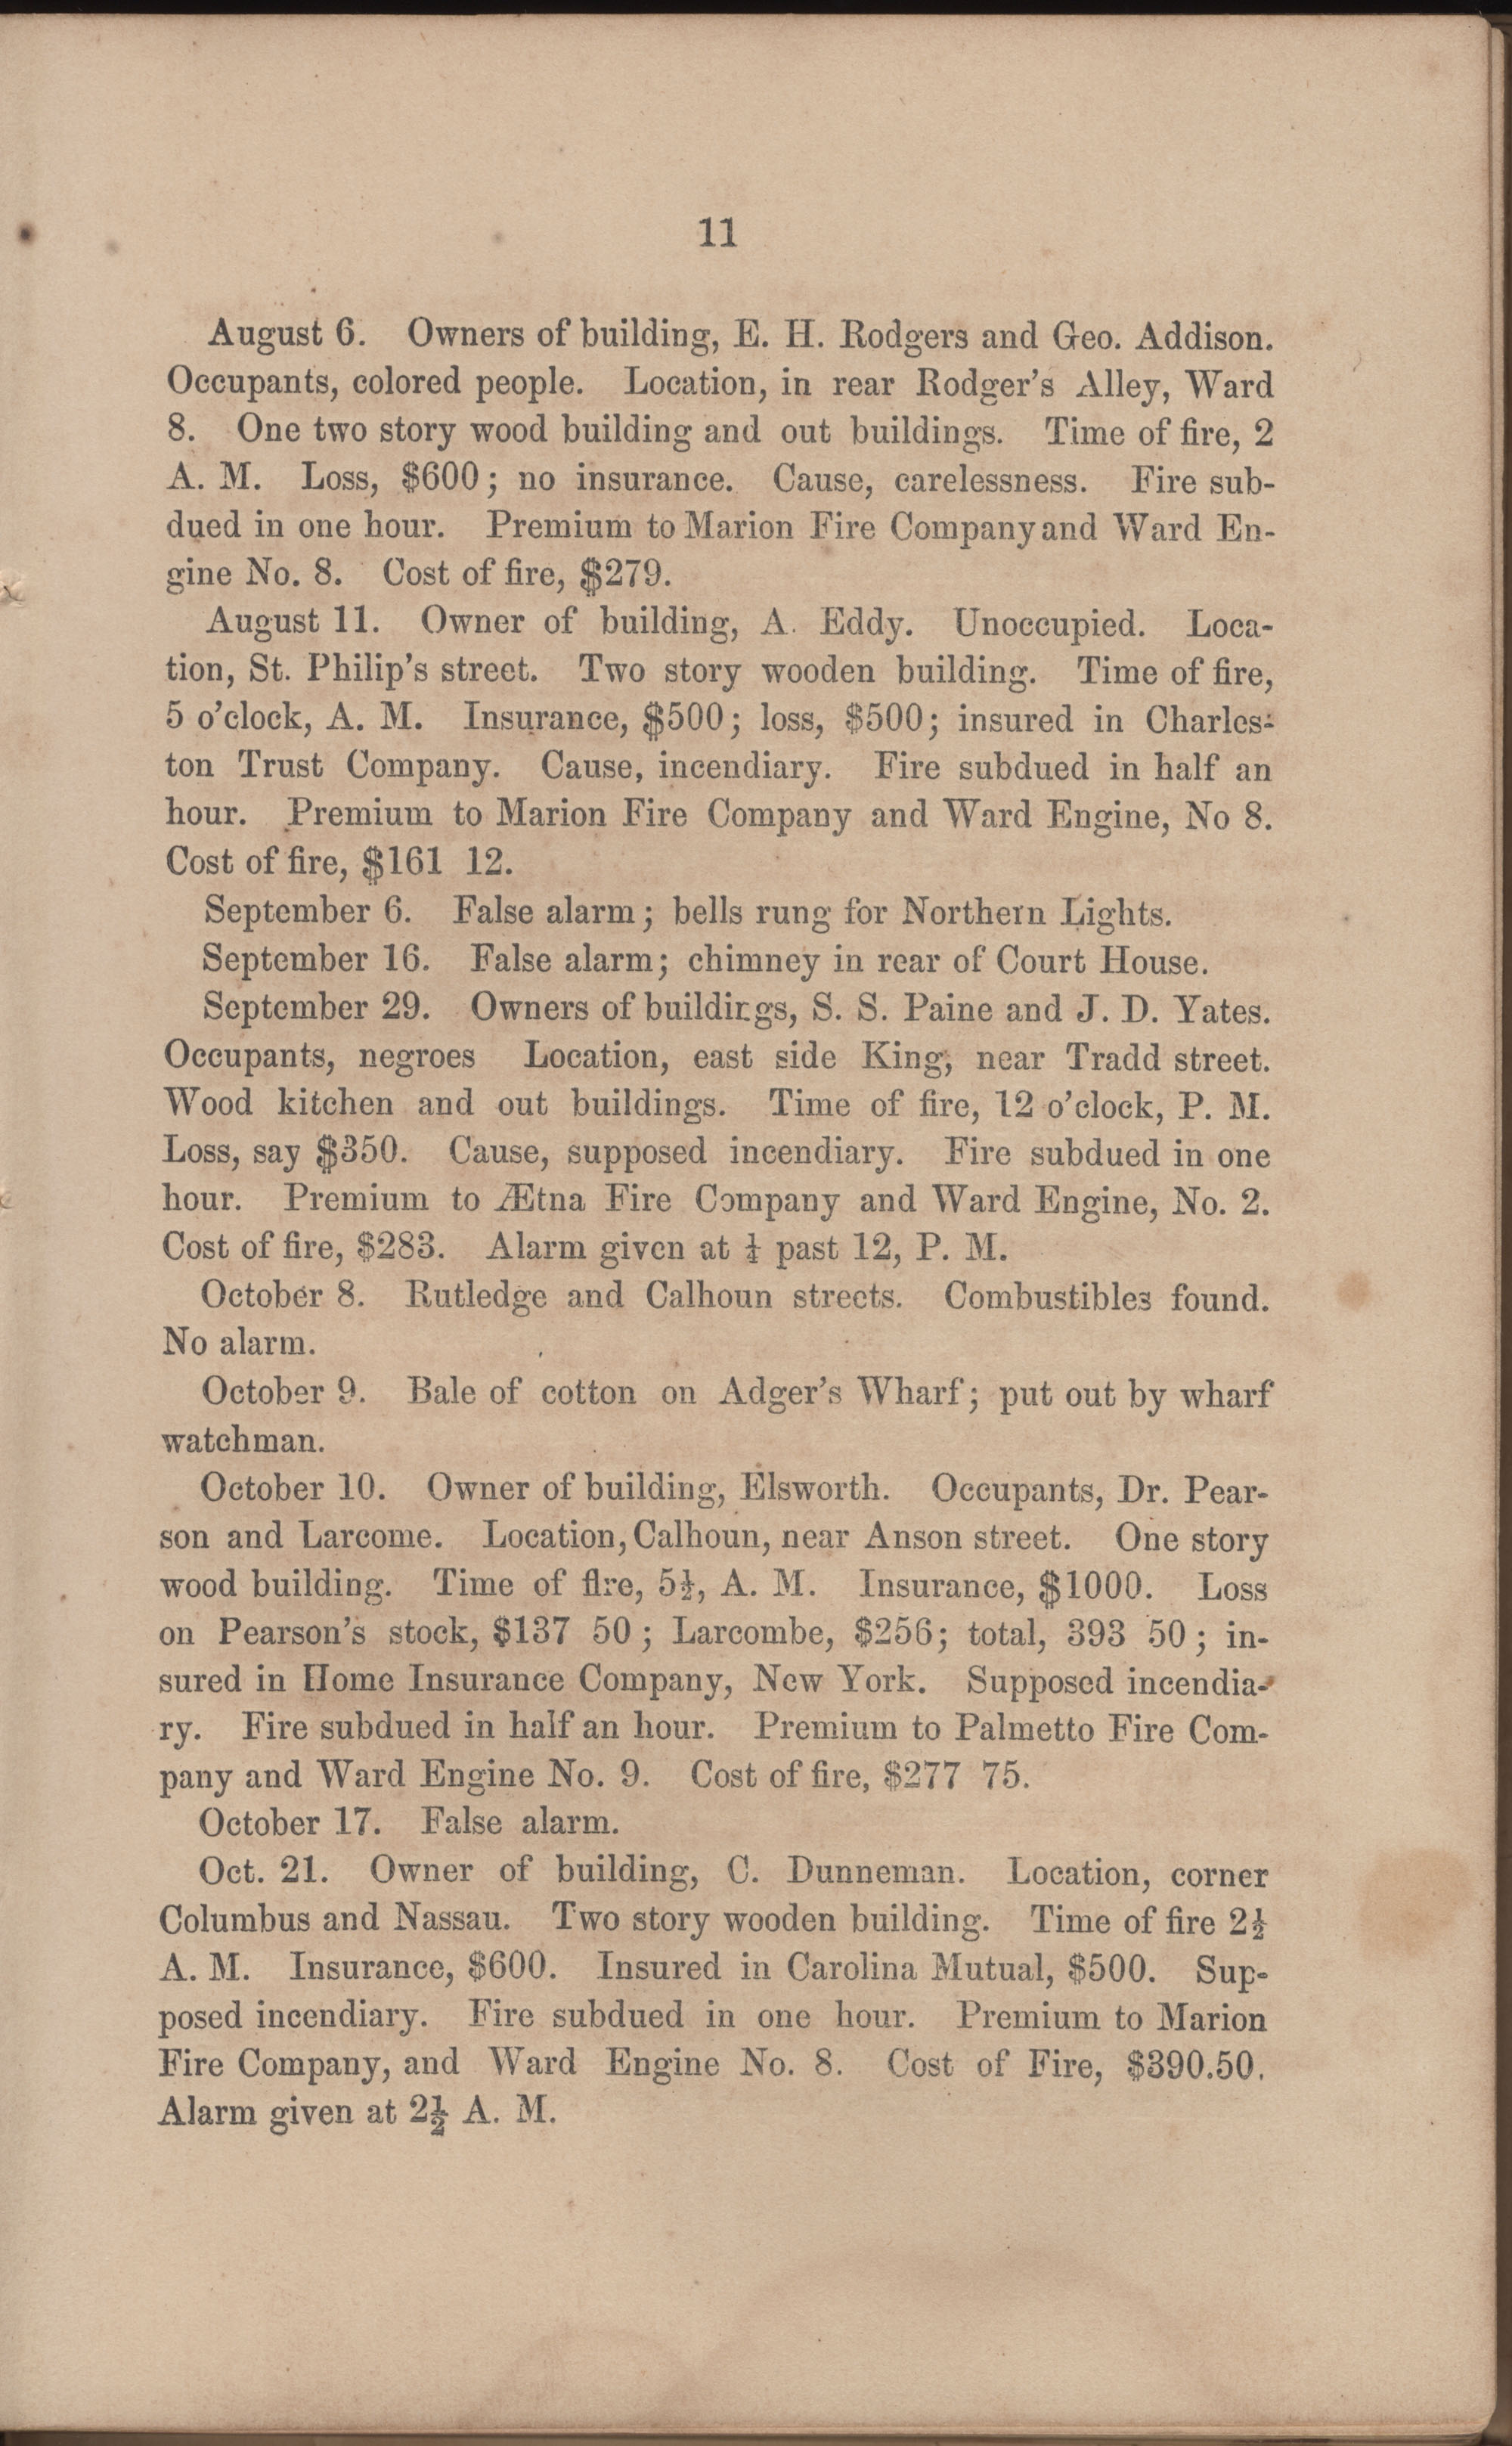 Annual Report of the Chief of the Fire Department of the City of Charleston, page 72